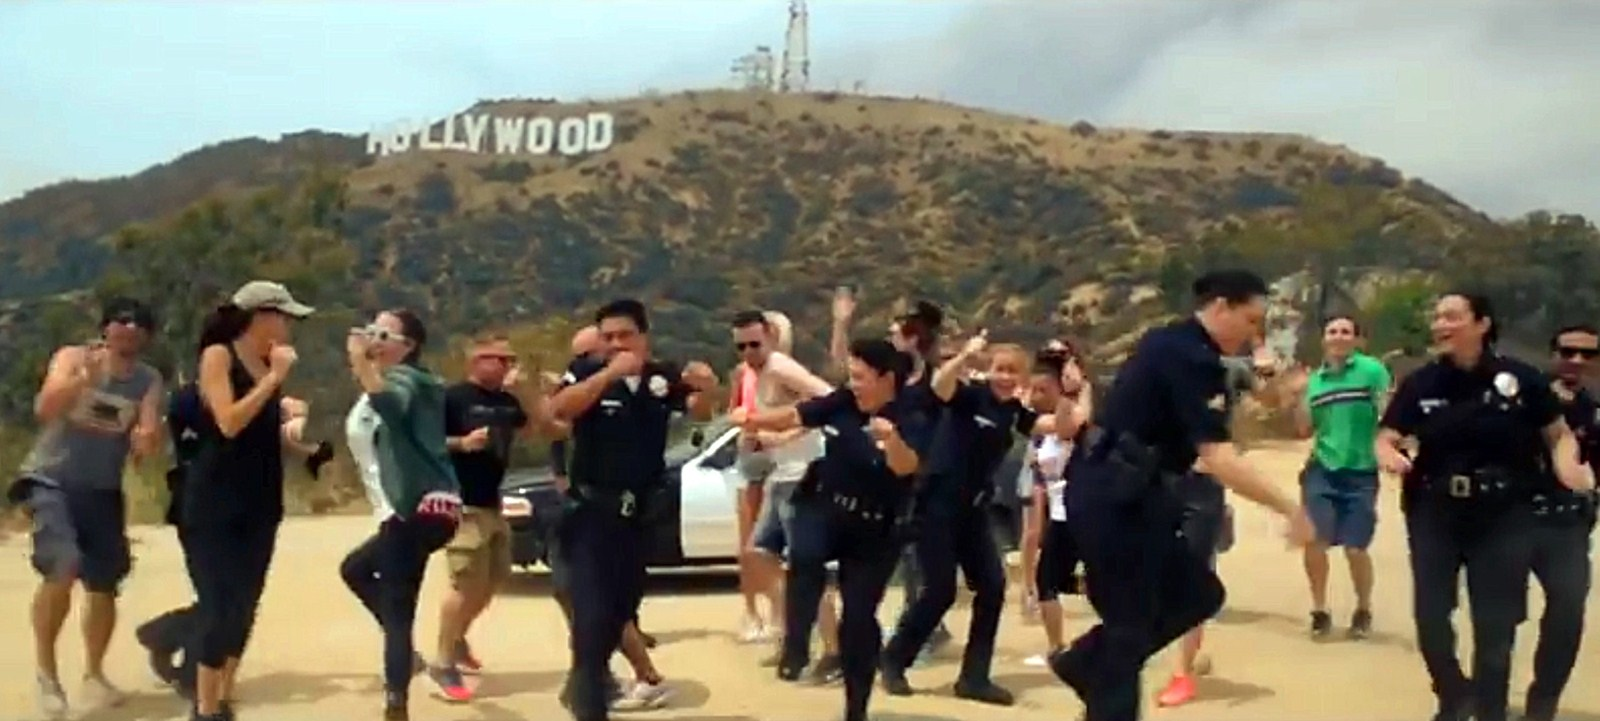 Dance challenge videos a badge of honor for police - Near